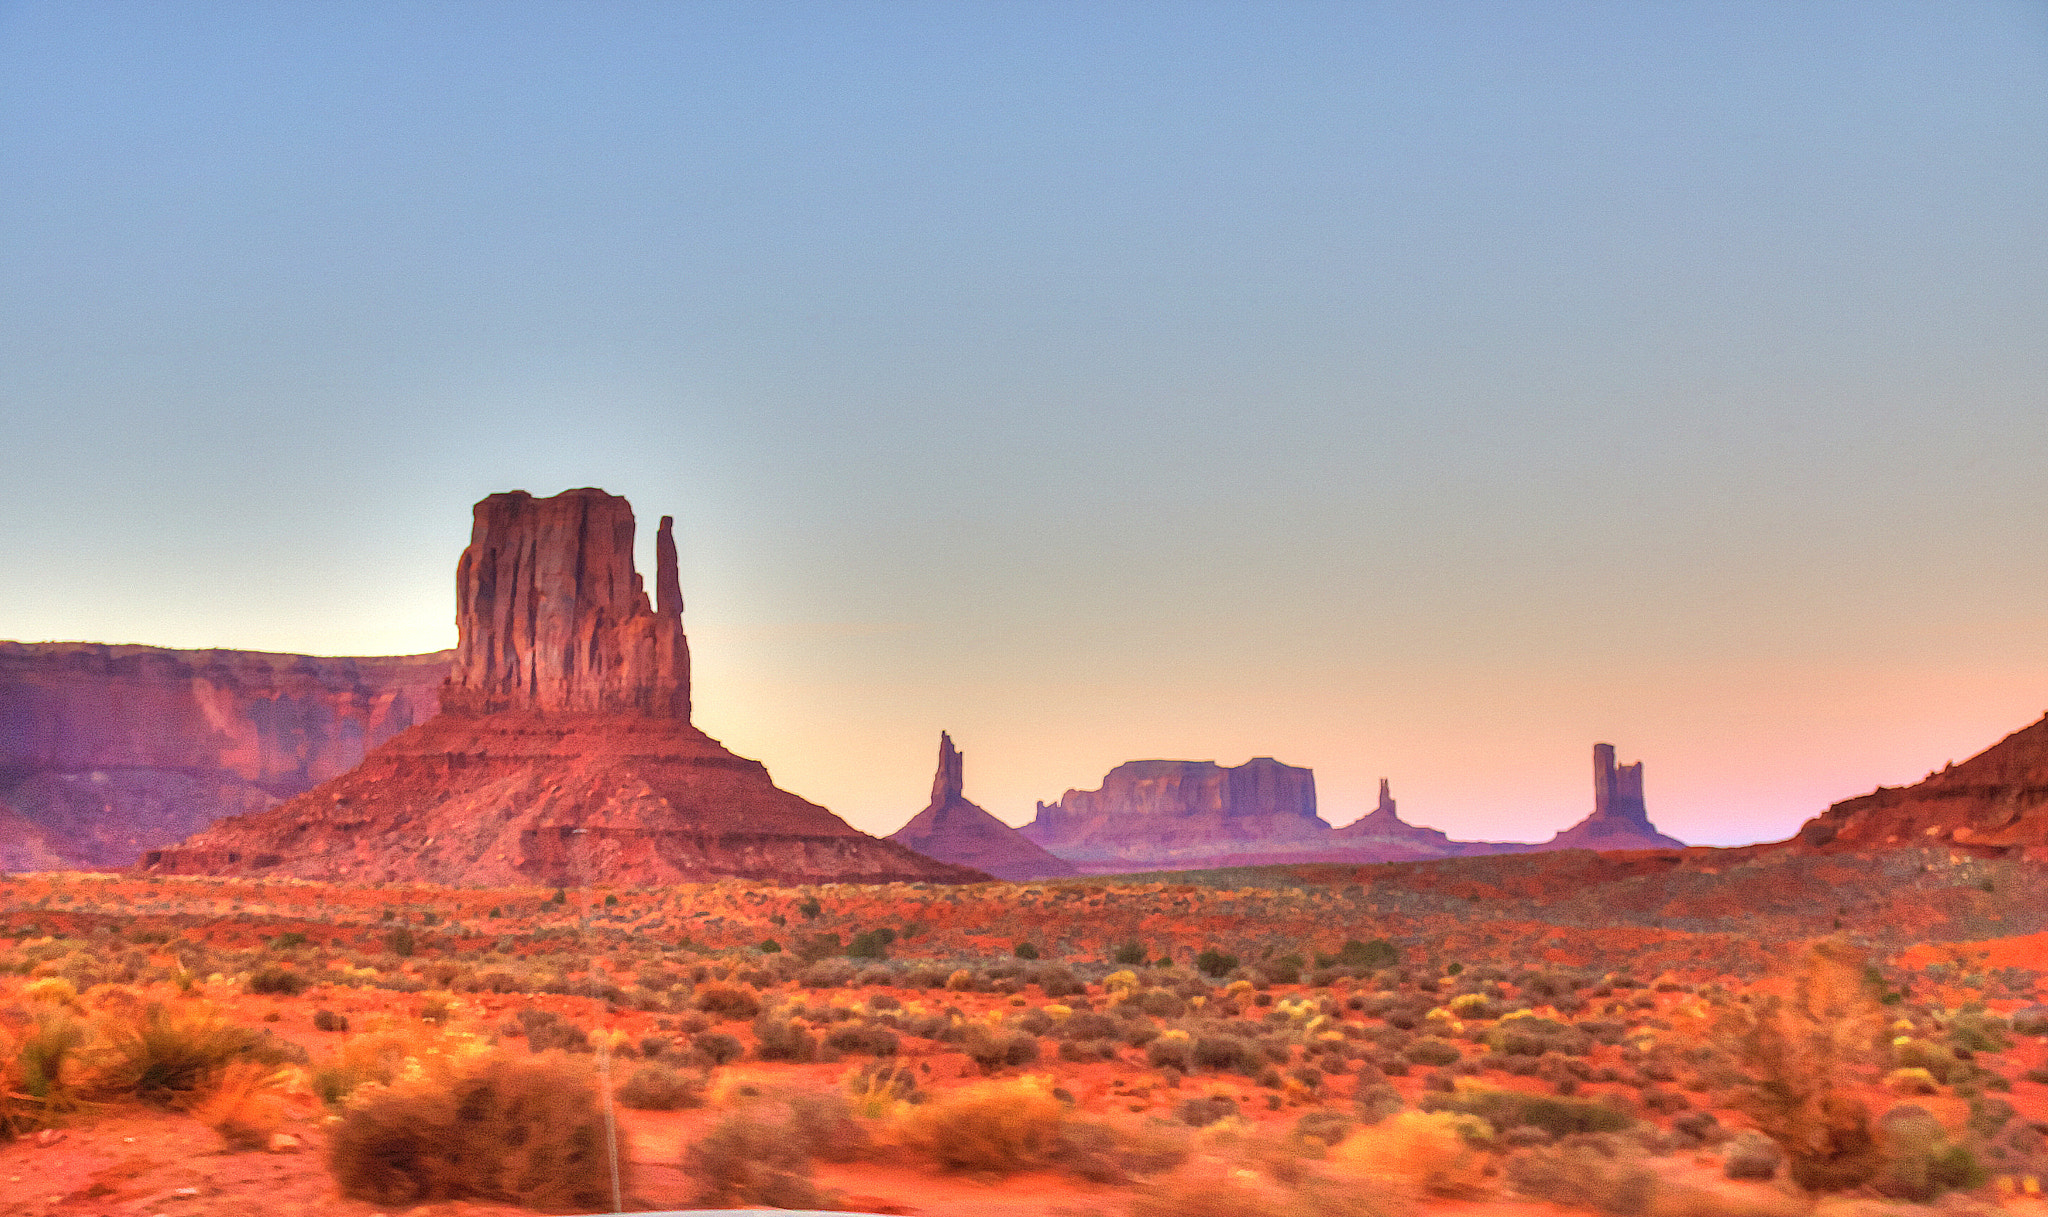 Photograph Monument Valley Sunset by Rishi Ranjan on 500px